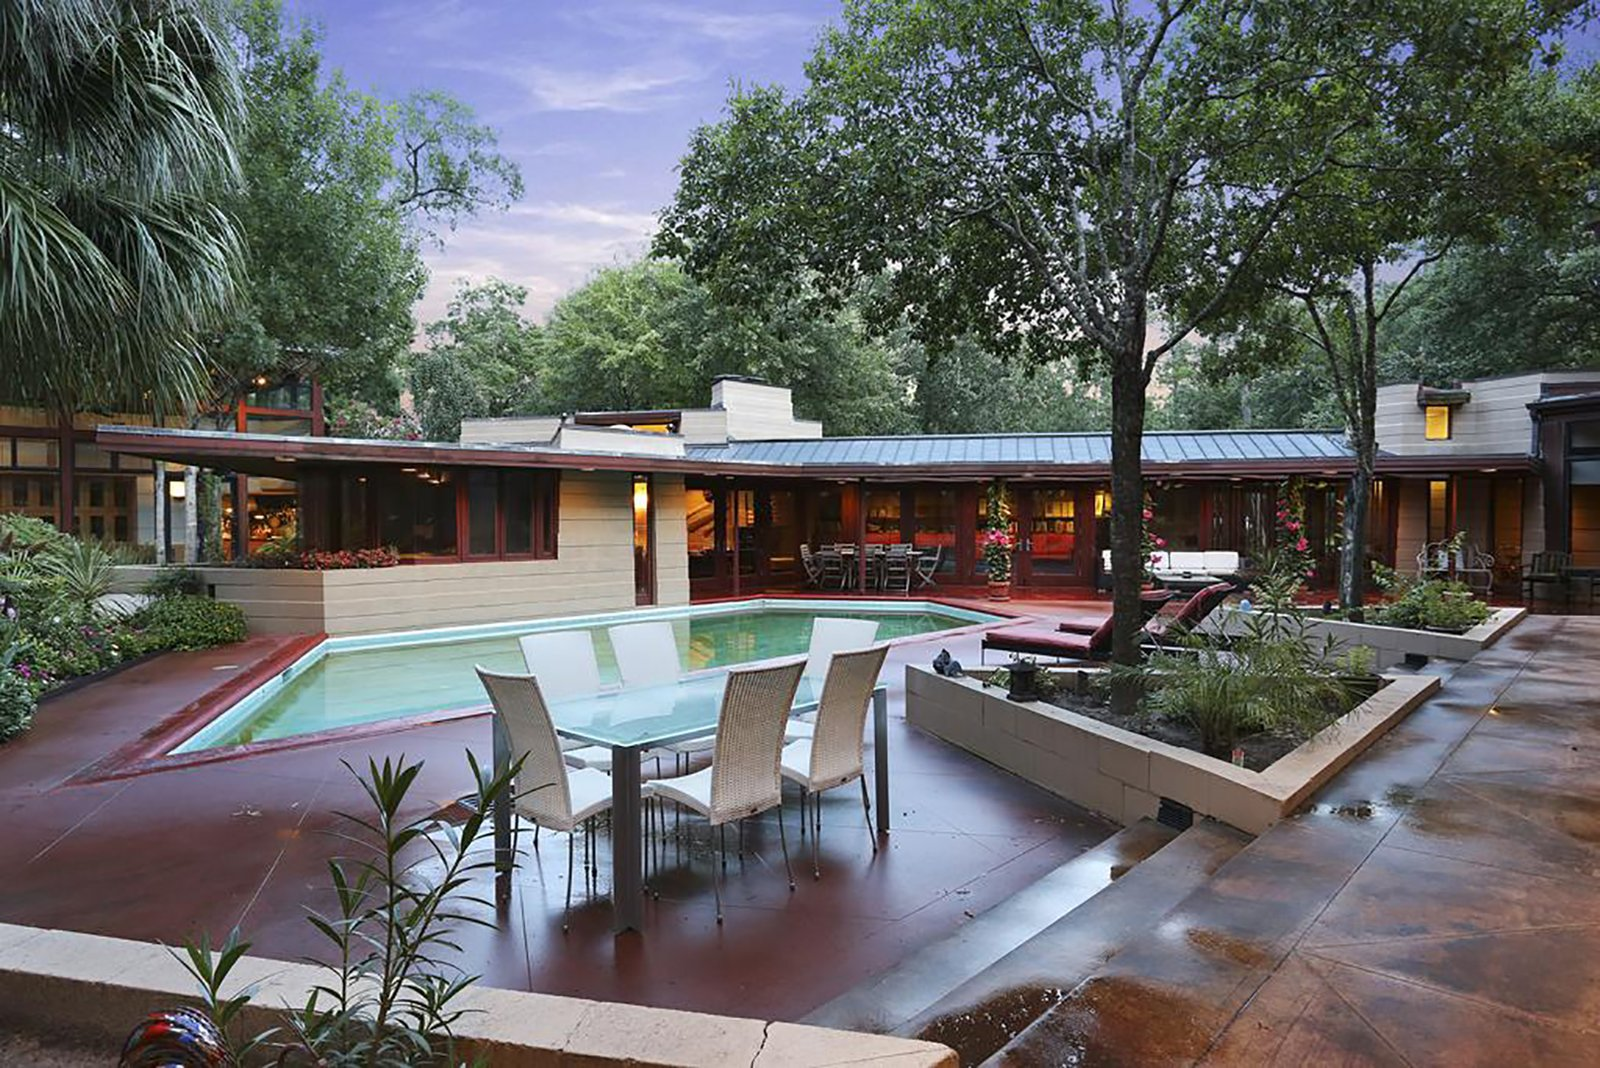 Distinguished as the only home in Houston designed by Frank Lloyd Wright, this masterpiece is an art collector's paradise. Ideal for both casual living and grand entertaining, this private residence features multiple art galleries, high ceilings, geothermal temperature system and the original built-in furniture.  Photo 4 of 11 in Unforgettable Midcentury Homes by Modern Masters